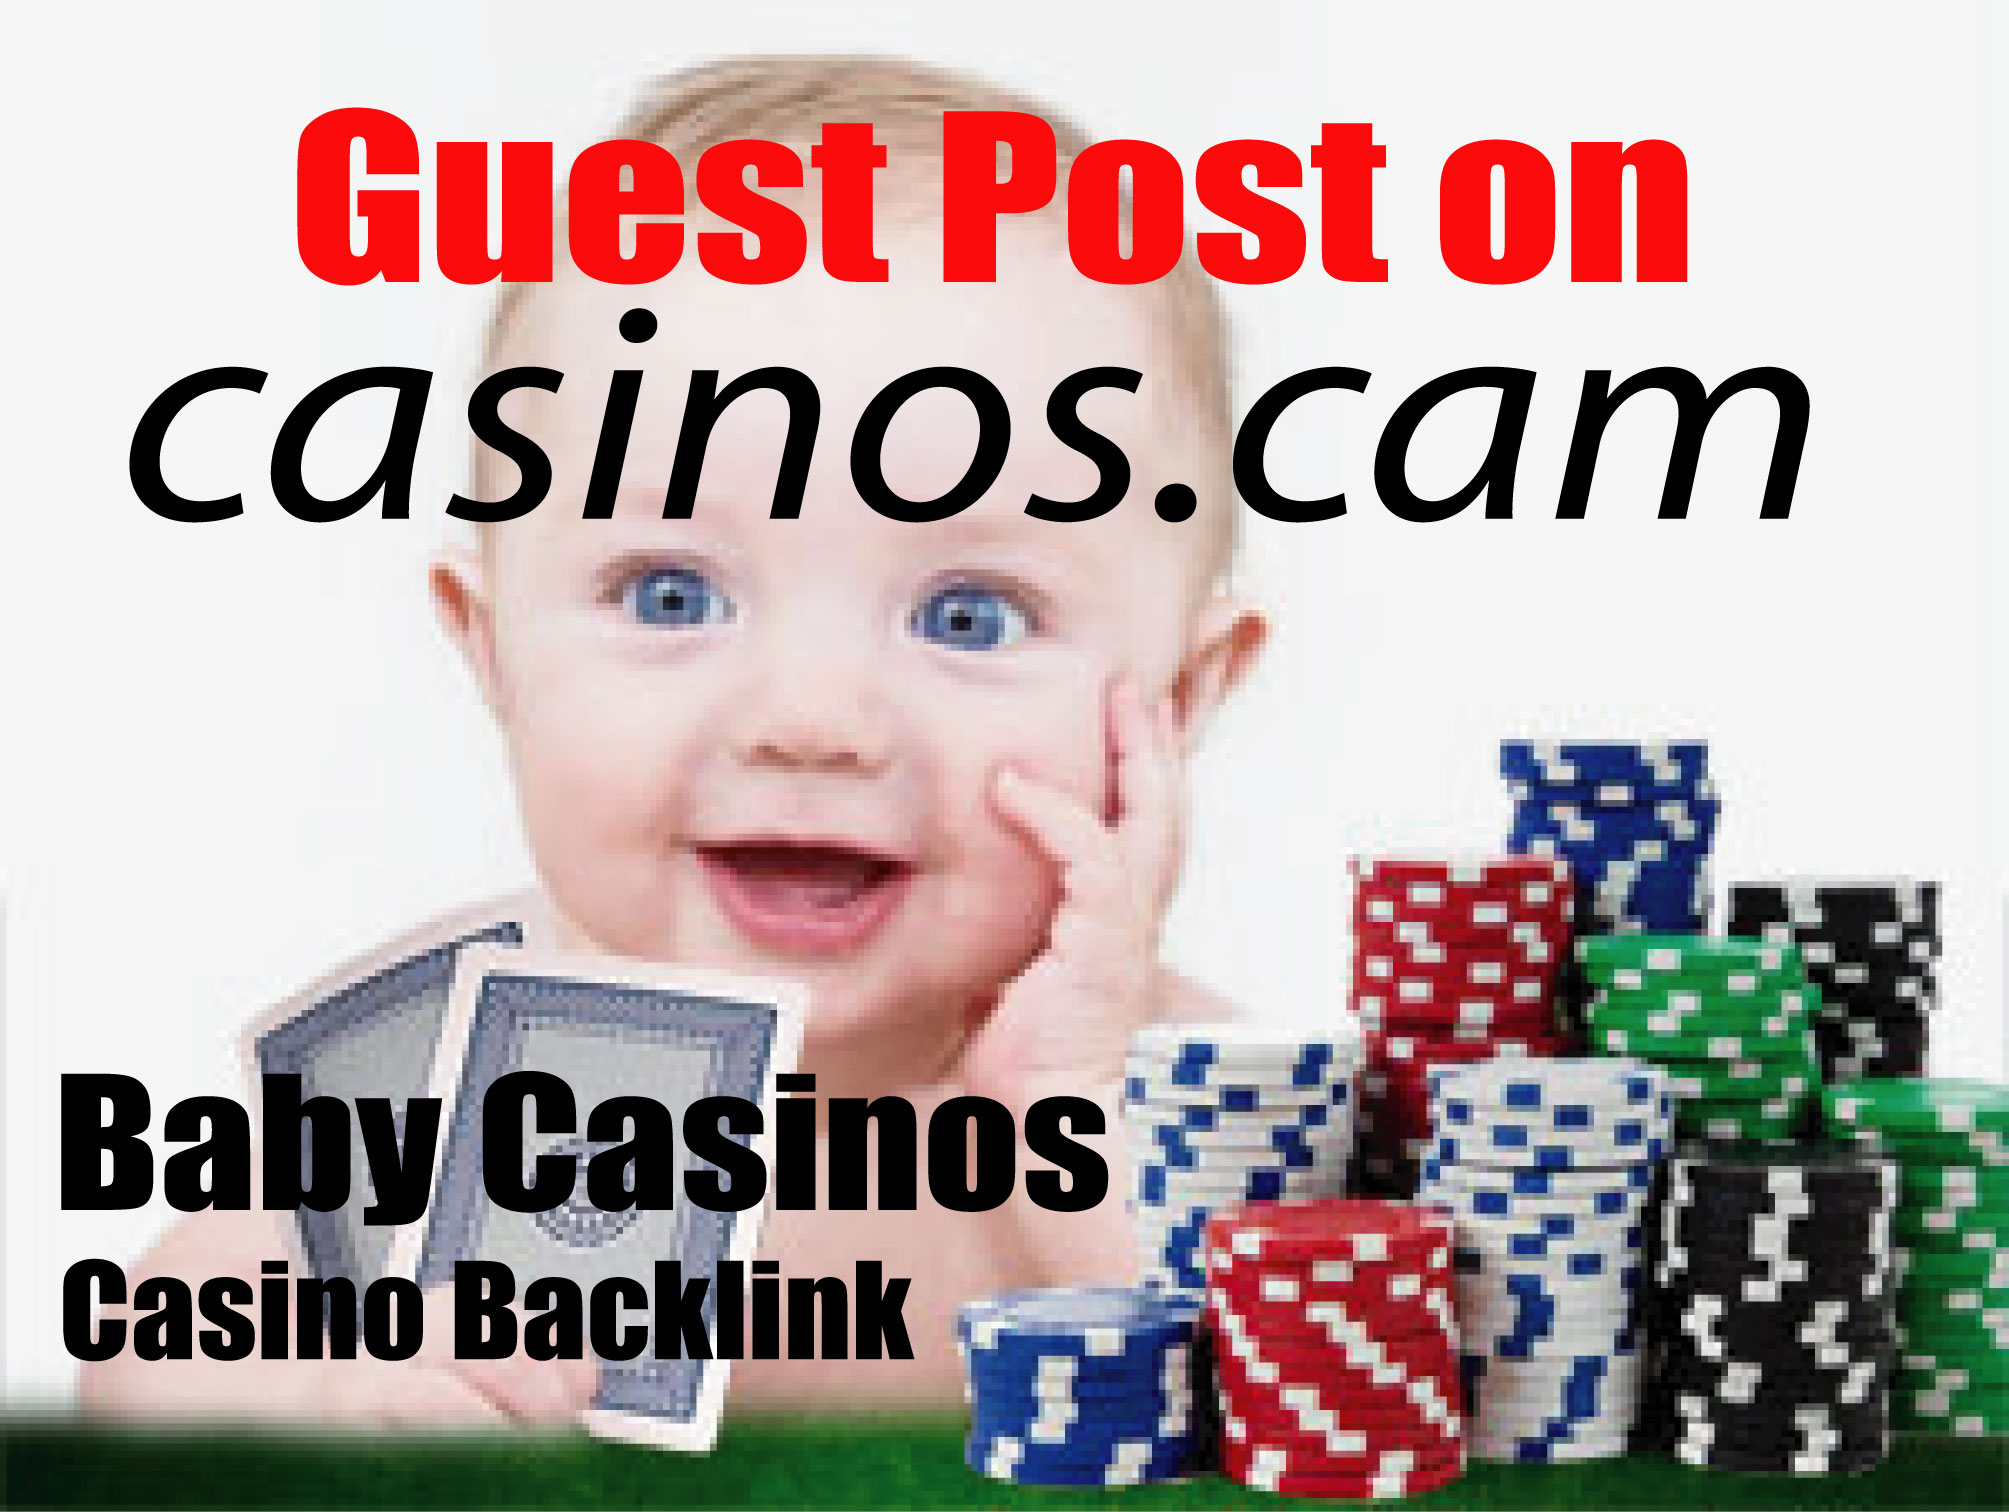 I Will Manually create Baby Casinos 100 Backlink Guest Post on Casinos. cam,  Gambling,  Online